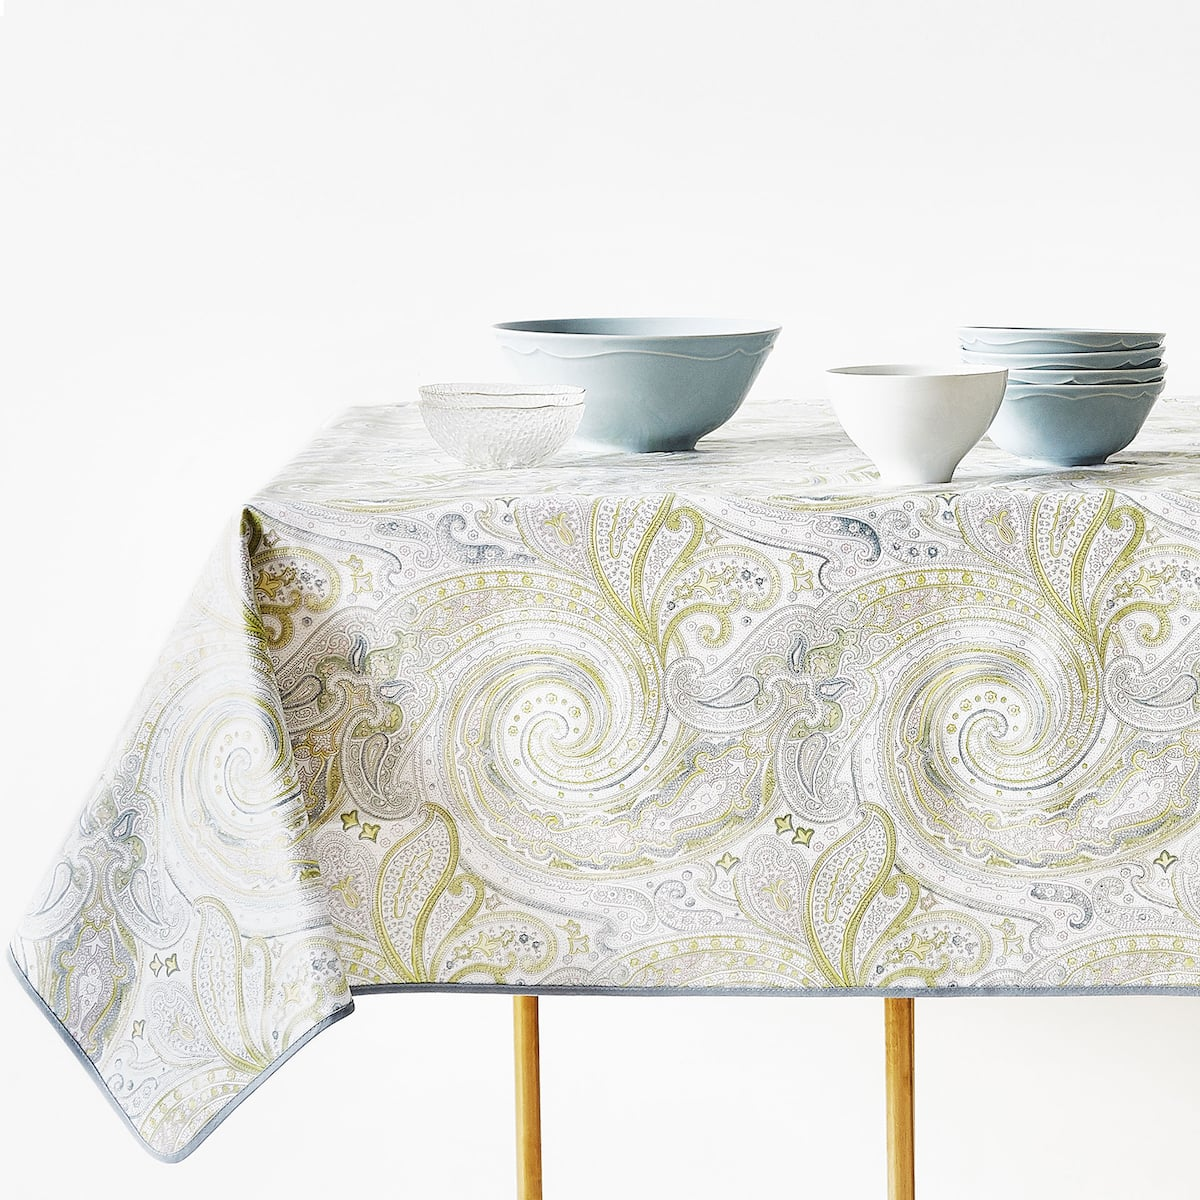 Great + Image 1 Of The Product LAMINATED COTTON PAISLEY TABLECLOTH